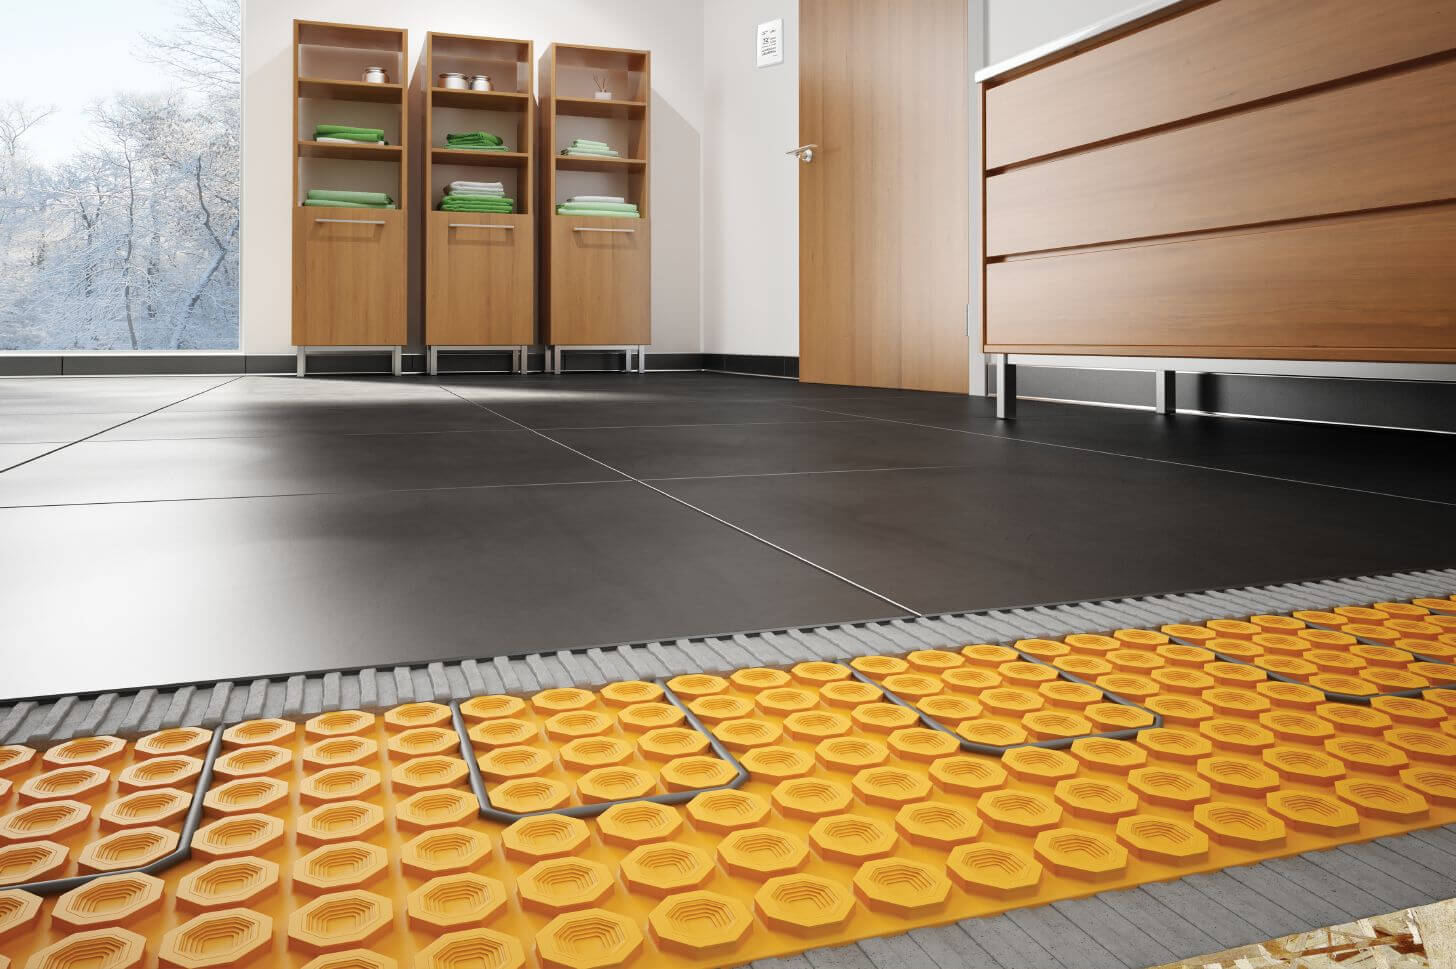 FOr the most relaxing early morning bathroom visits, try heated tile